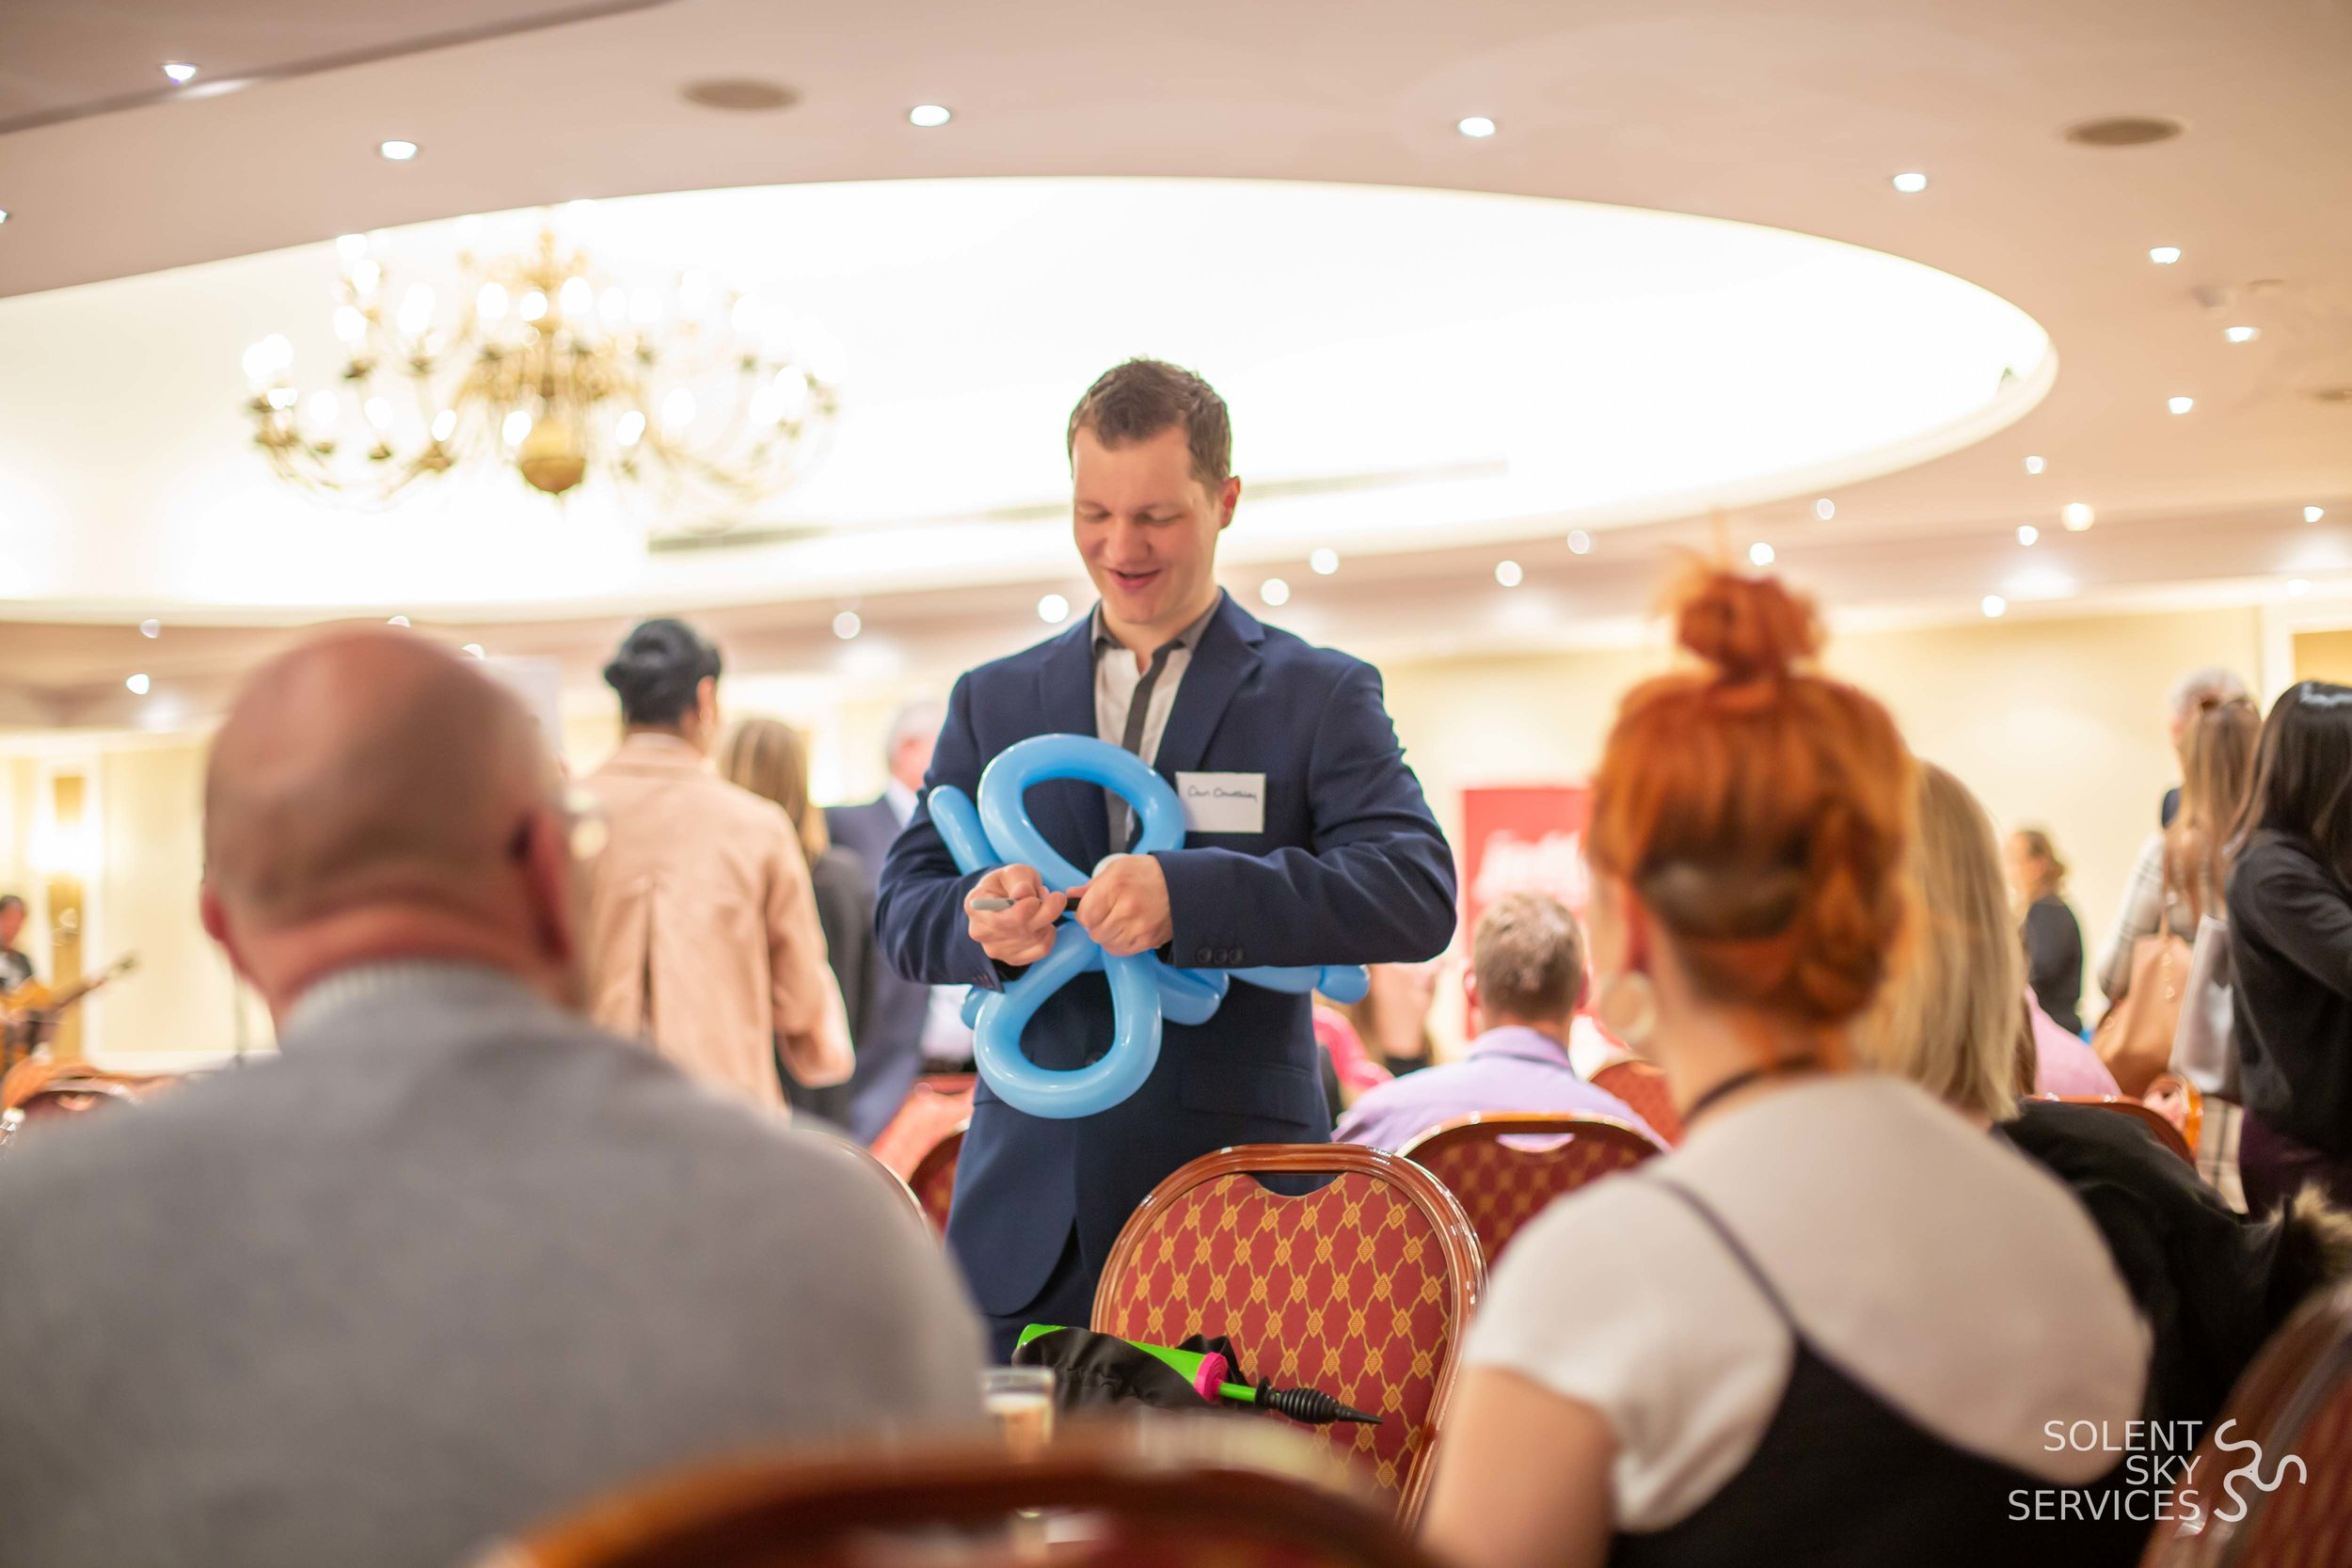 Synergy Success Networking Event #2 - Solent Sky Services-7.JPG